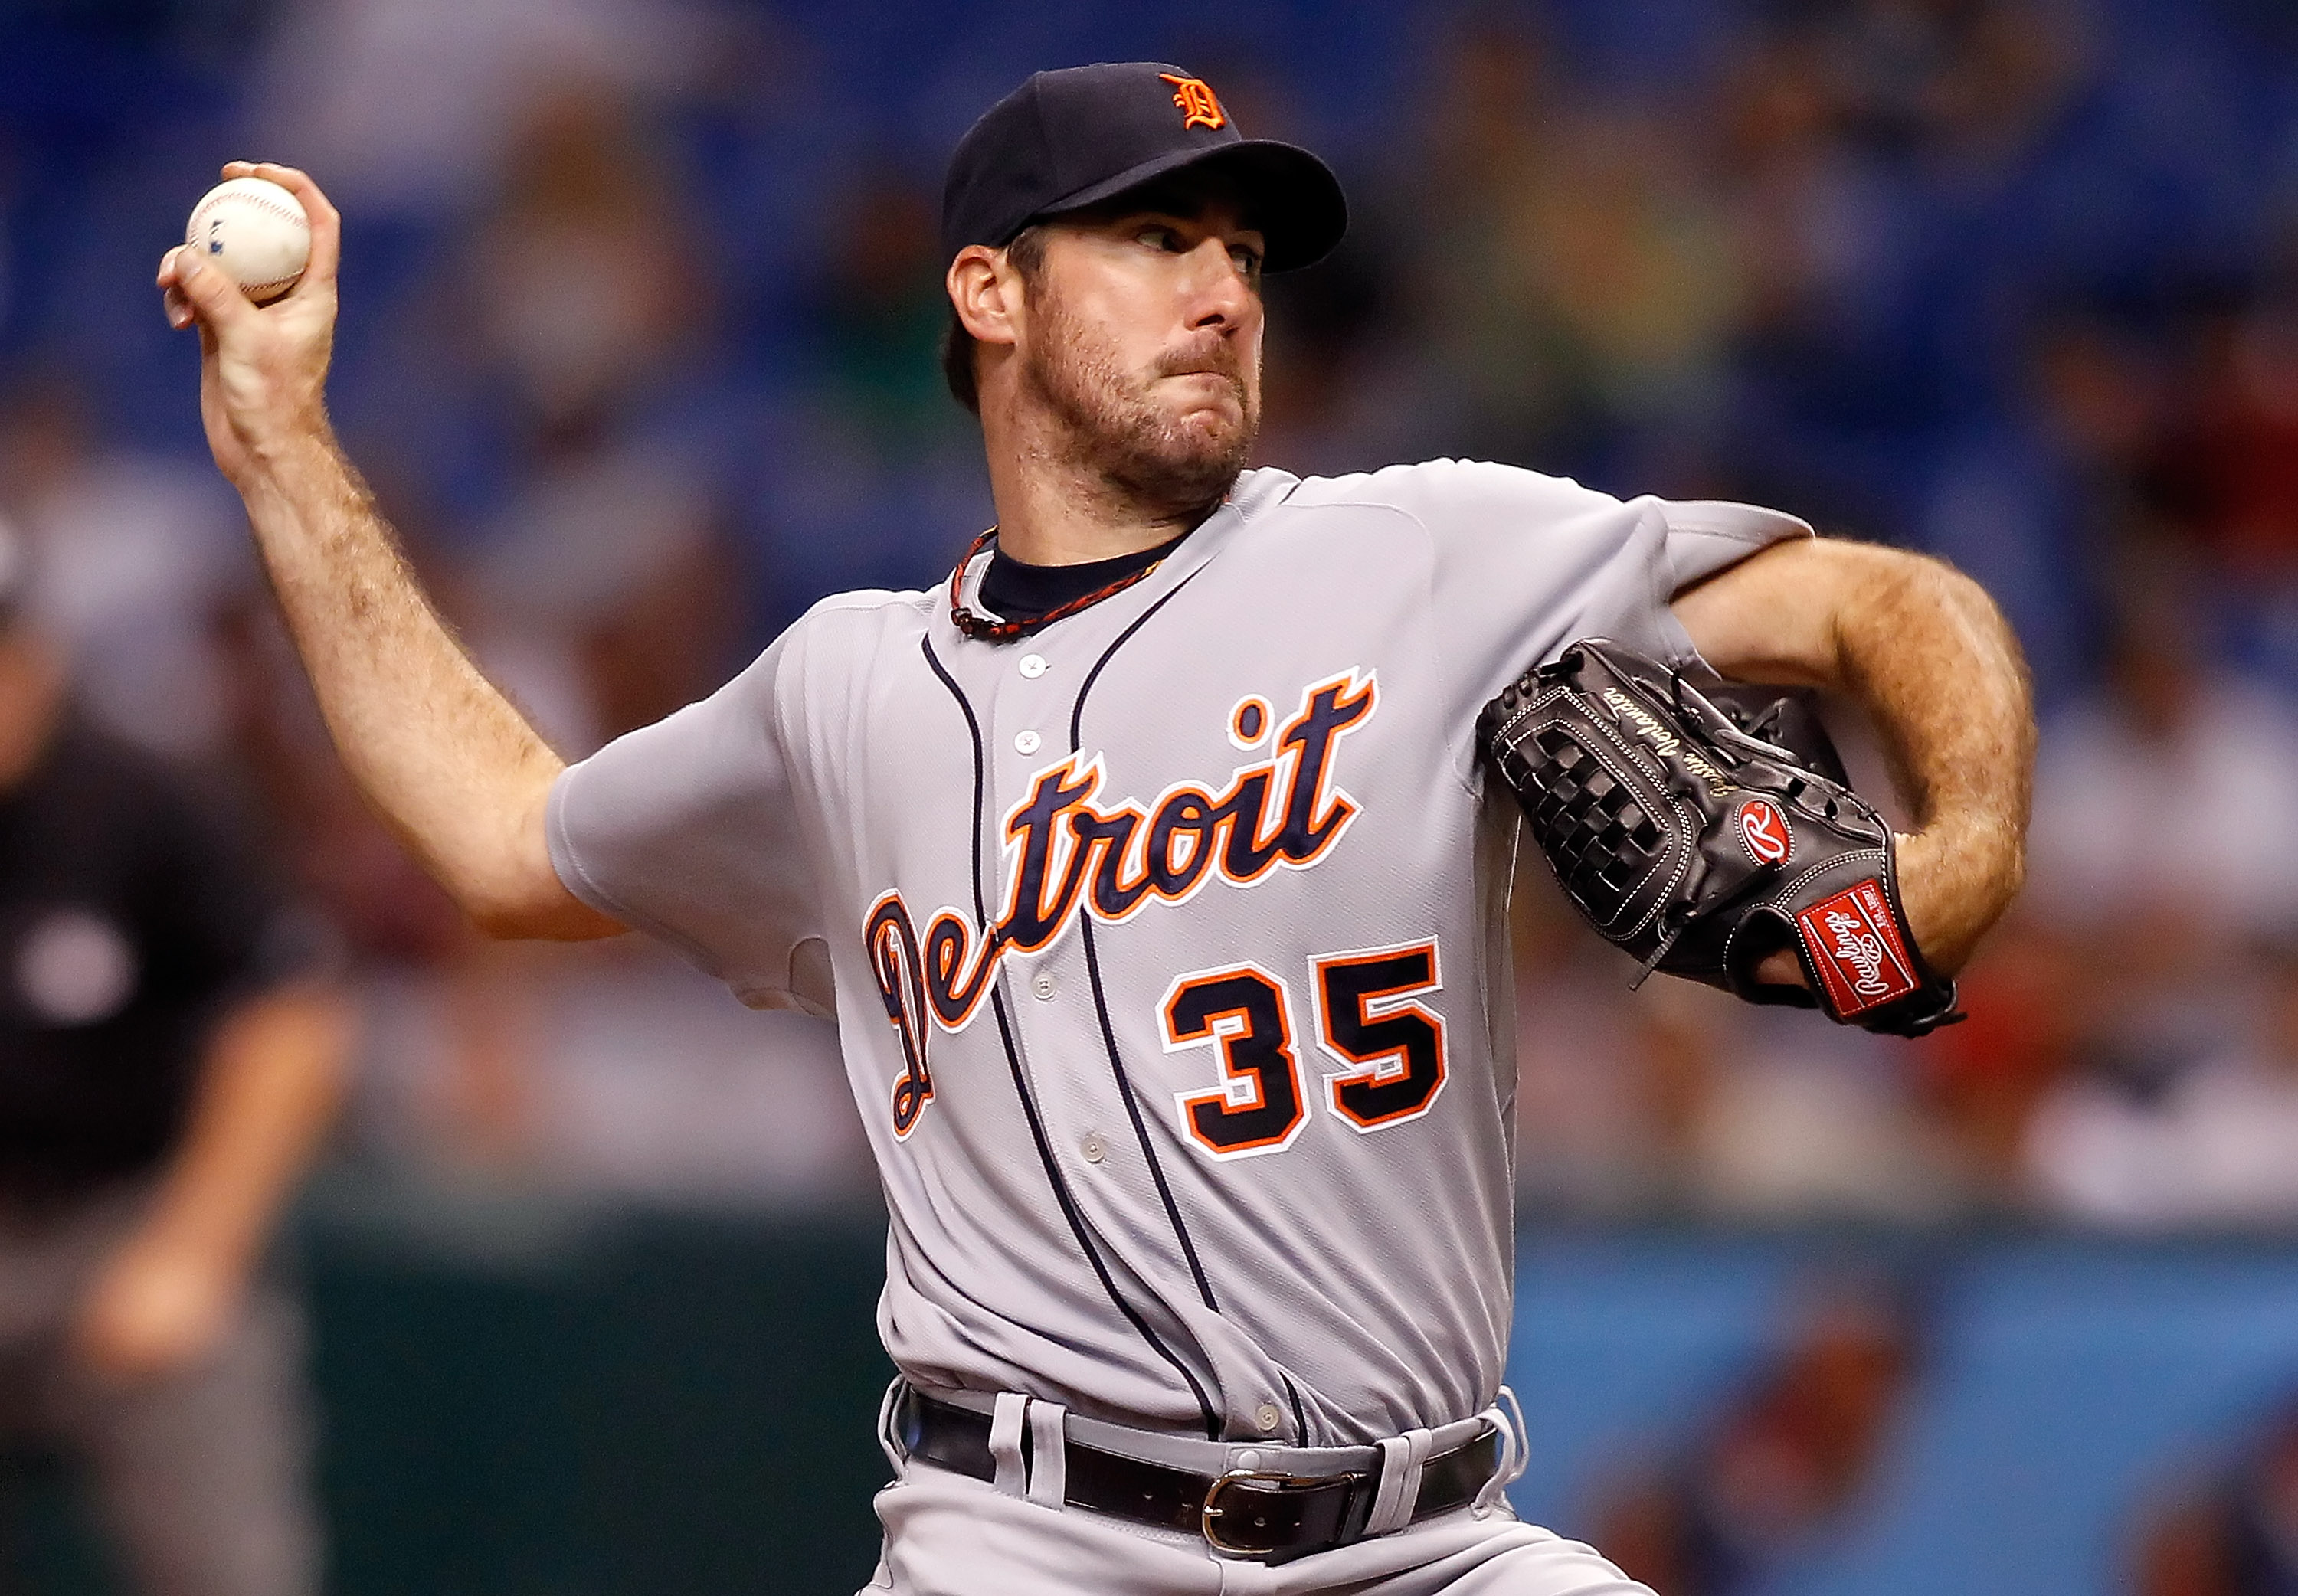 ST. PETERSBURG - JULY 27:  Pitcher Justin Verlander #35 of the Detroit Tigers pitches against the Tampa Bay Rays during the game at Tropicana Field on July 27, 2010 in St. Petersburg, Florida.  (Photo by J. Meric/Getty Images)